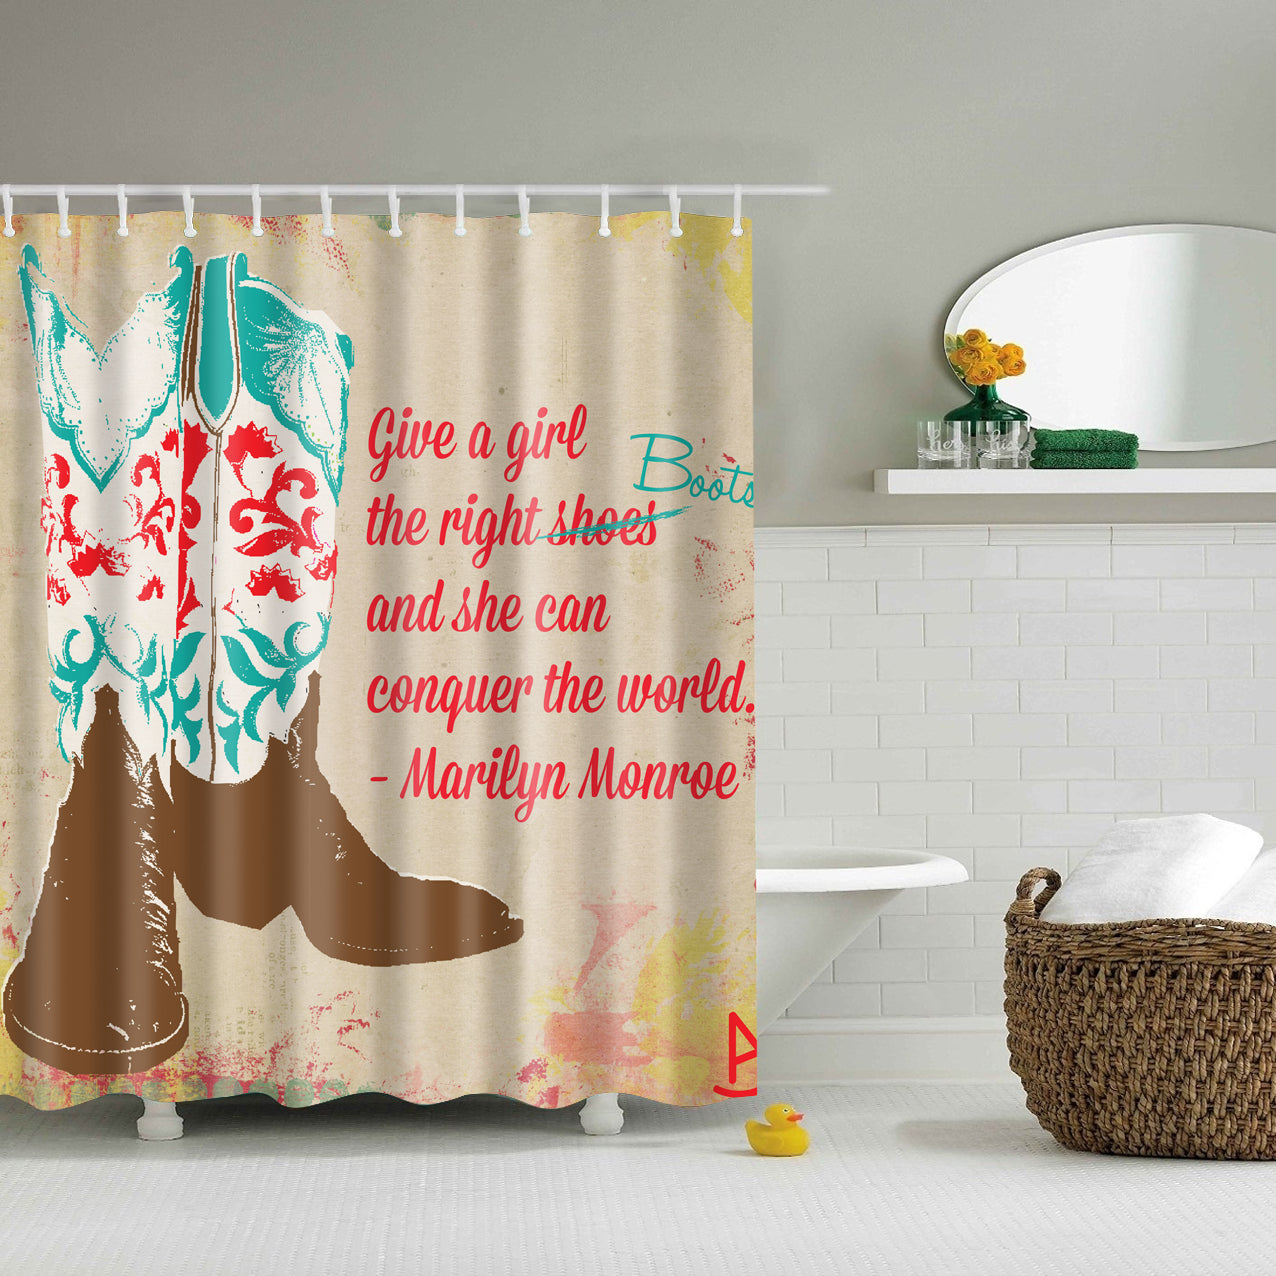 Girly Boots Marilyn Monroe Quote Shower Curtain